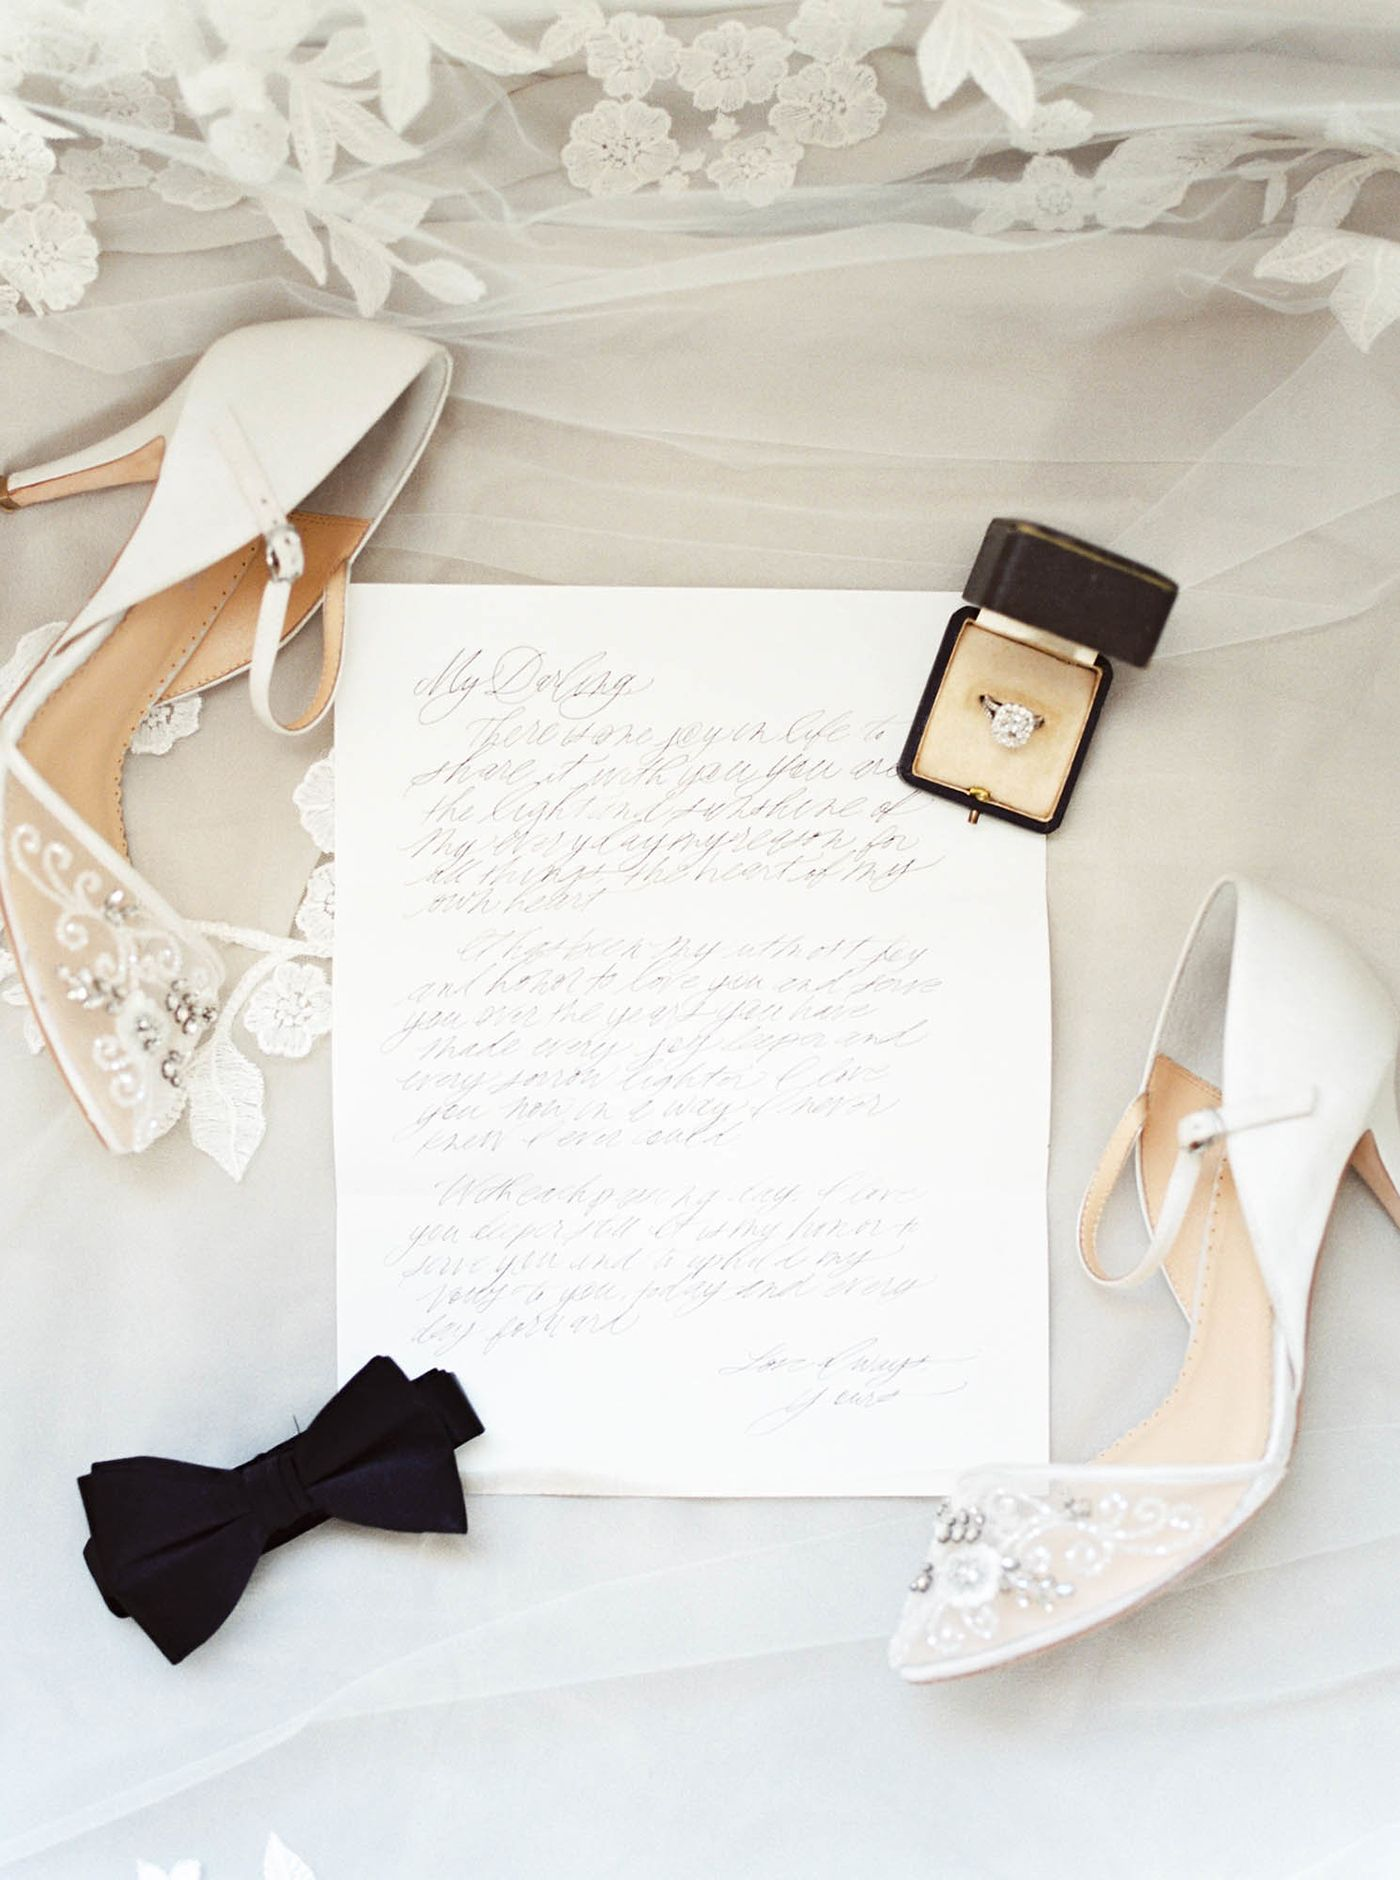 Fine Art Wedding Invitations Vows Intimate Vow Renewal At The